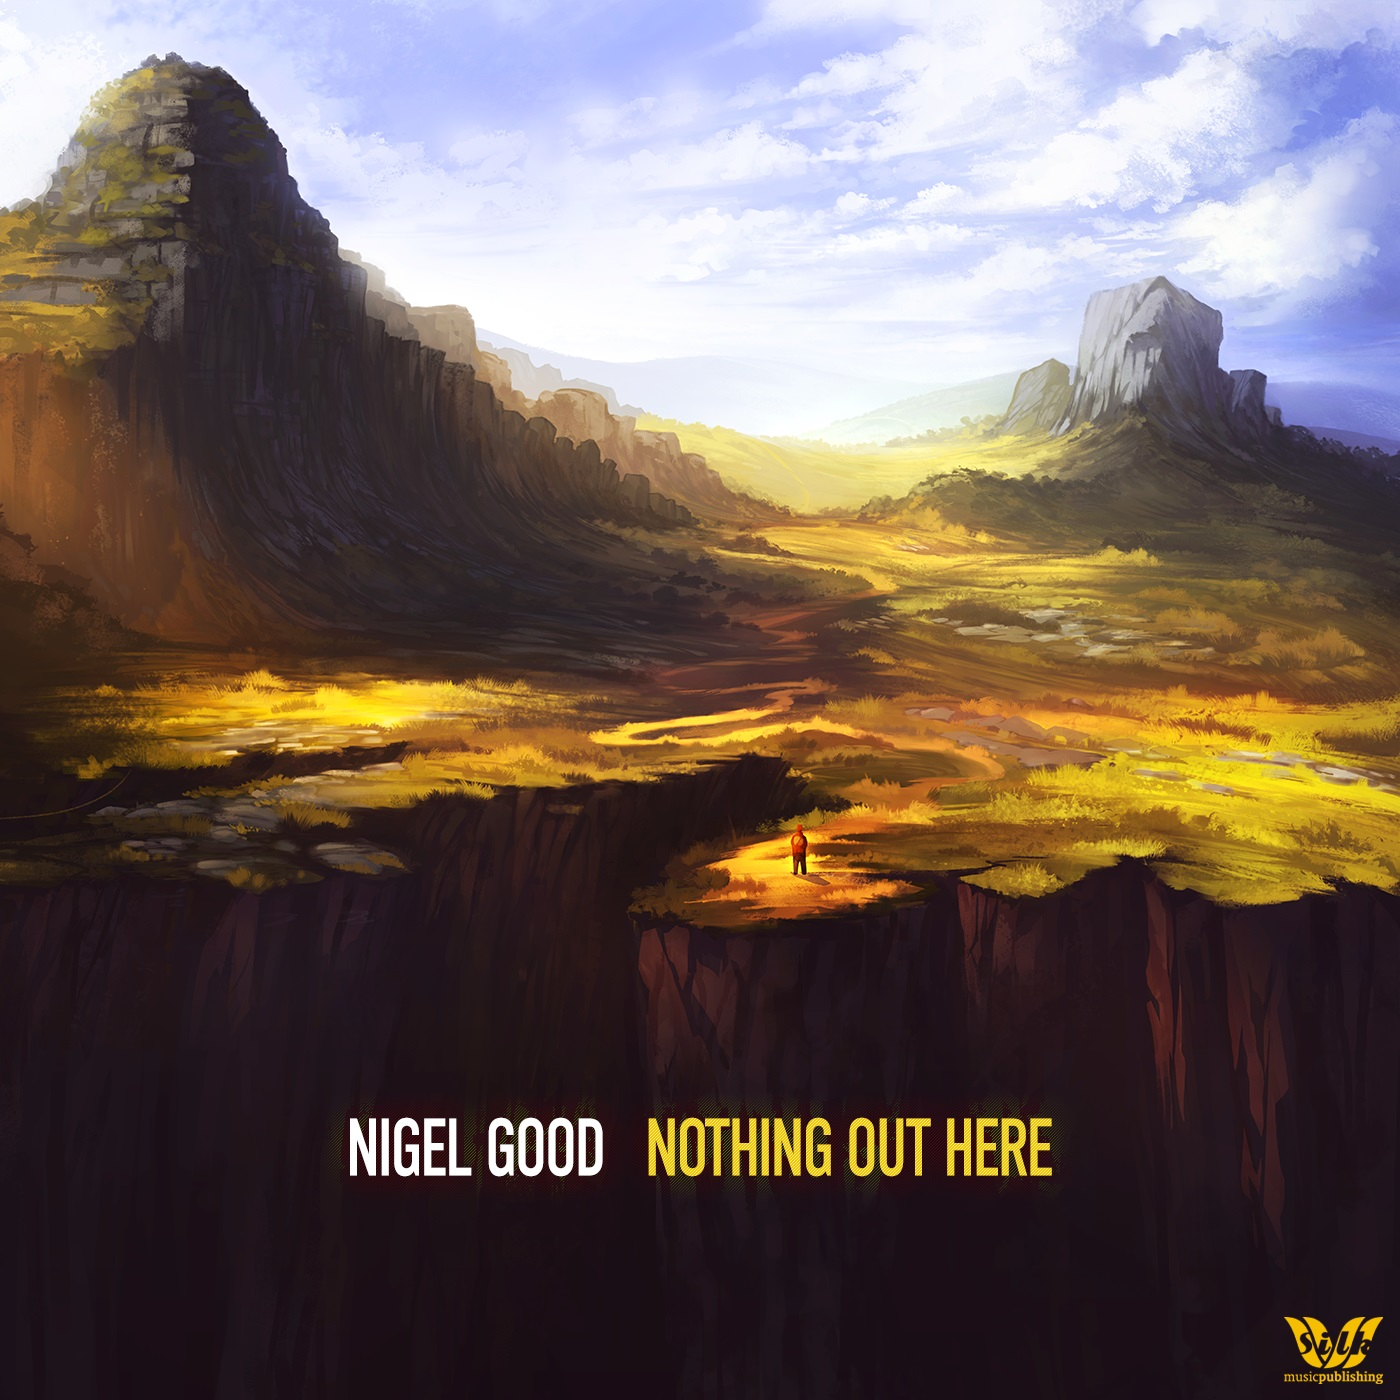 nigel good nothing out here